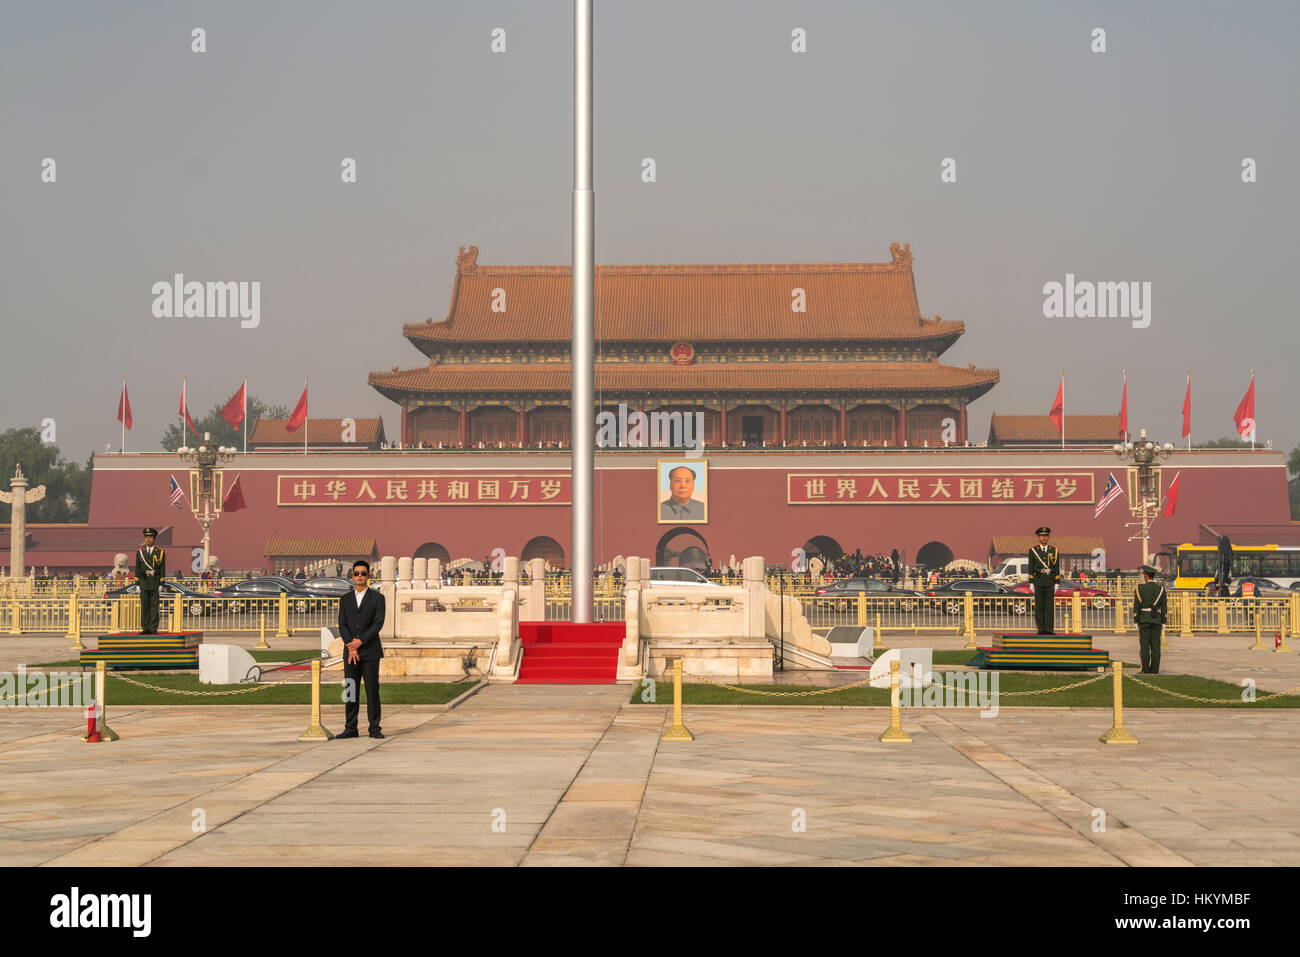 National flag on Tiananmen Square, Beijing, People's Republic of China, Asia - Stock Image